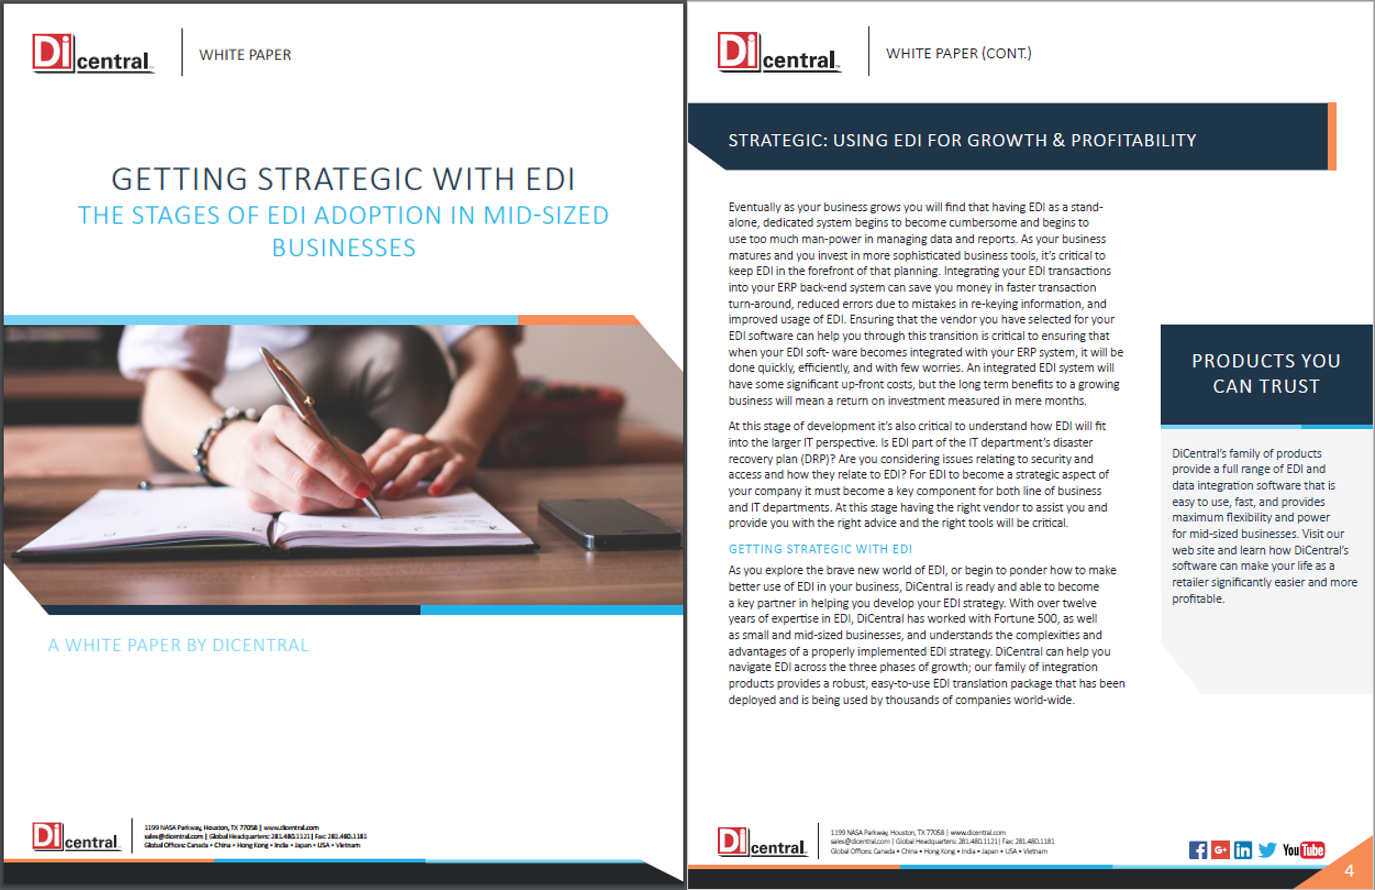 Getting Strategic with EDI: The Stages of EDI Adoption in Mid-sized Businesses